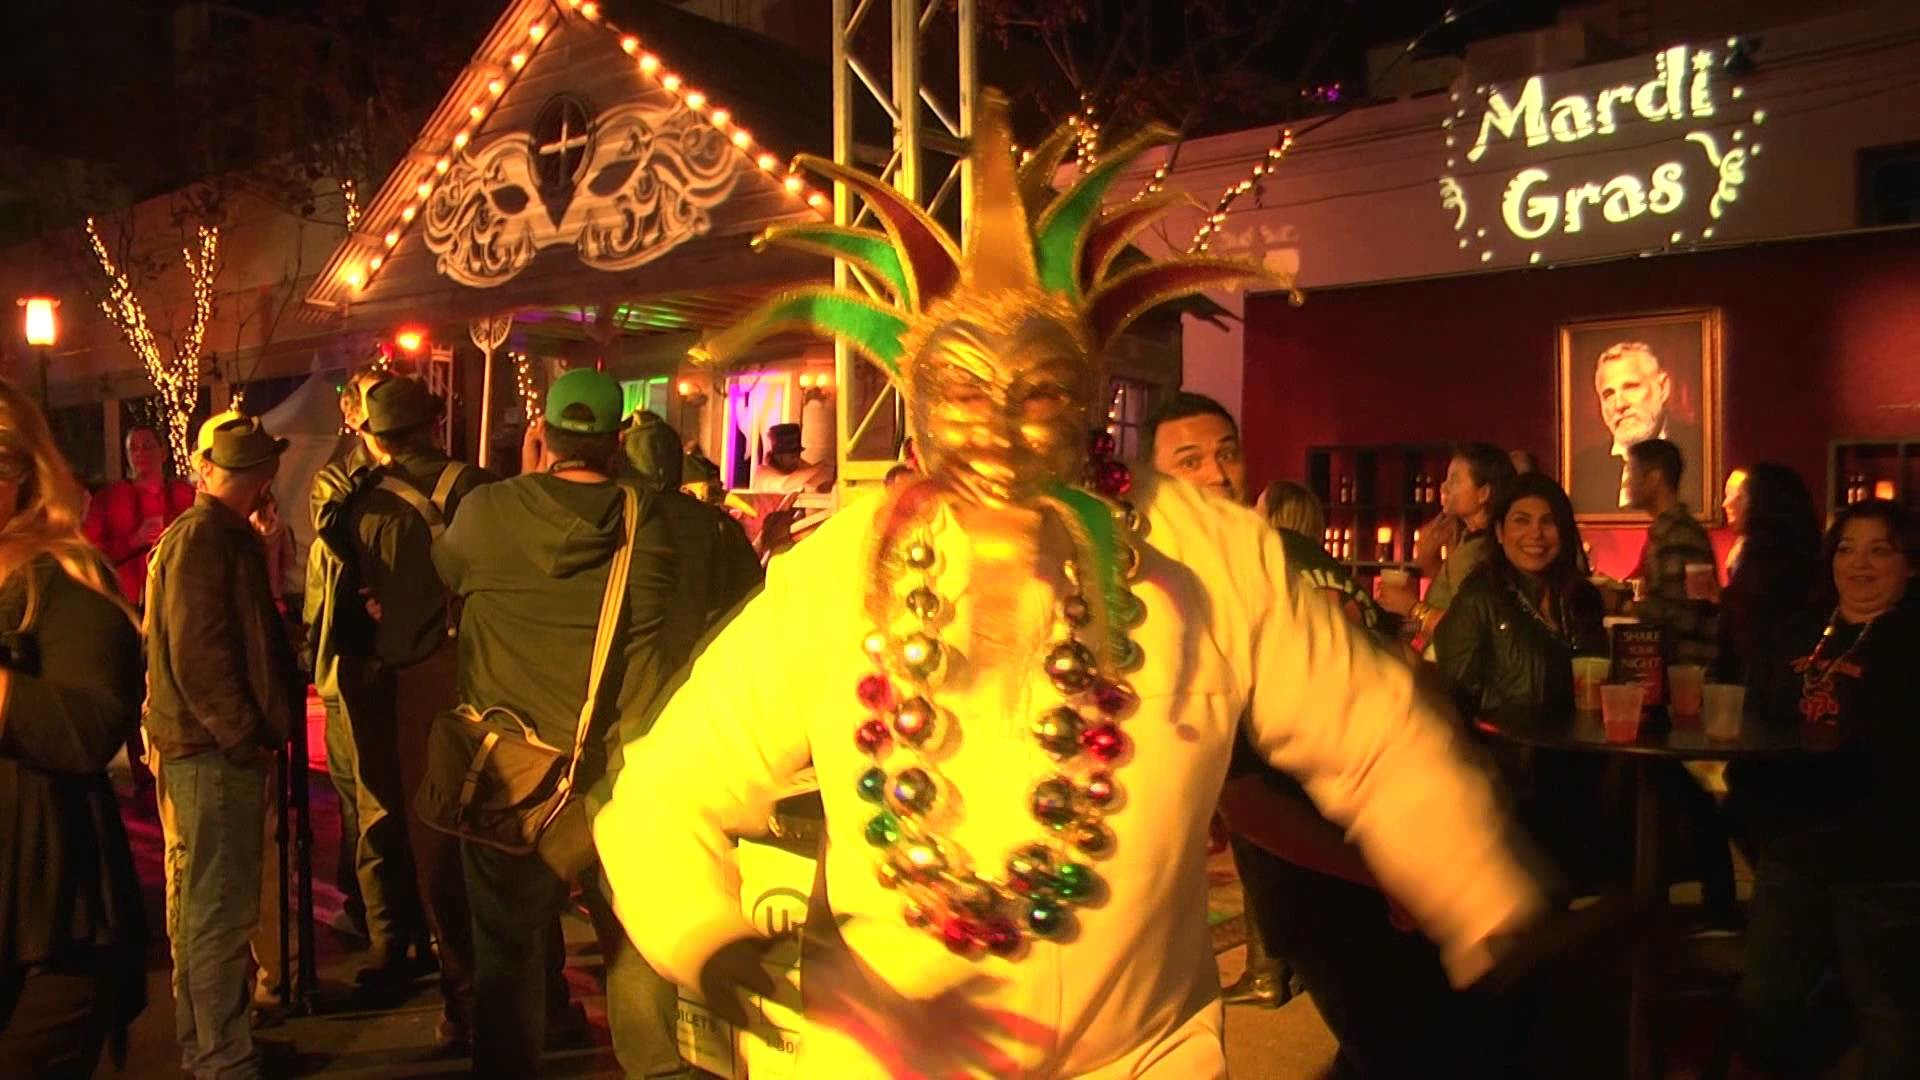 1920x1080 5 great Mardi Gras parties outside of New Orleans